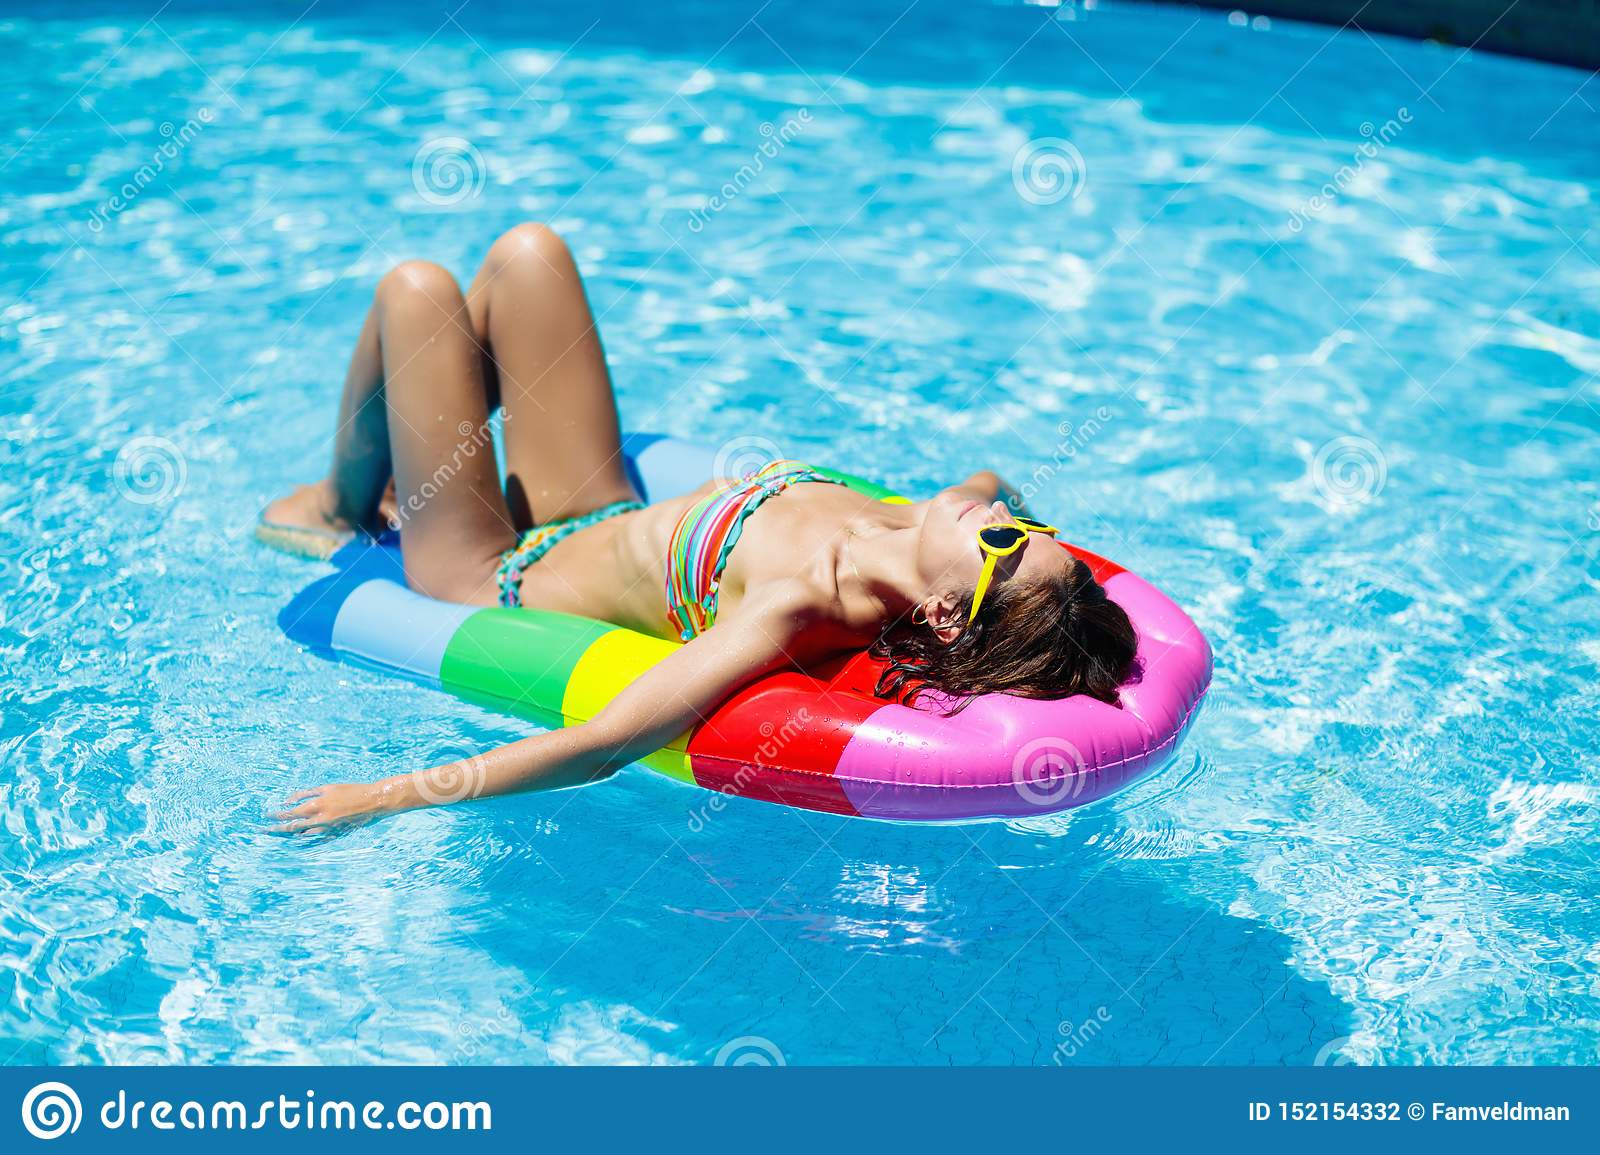 Woman in swimming pool on float. Female swimming